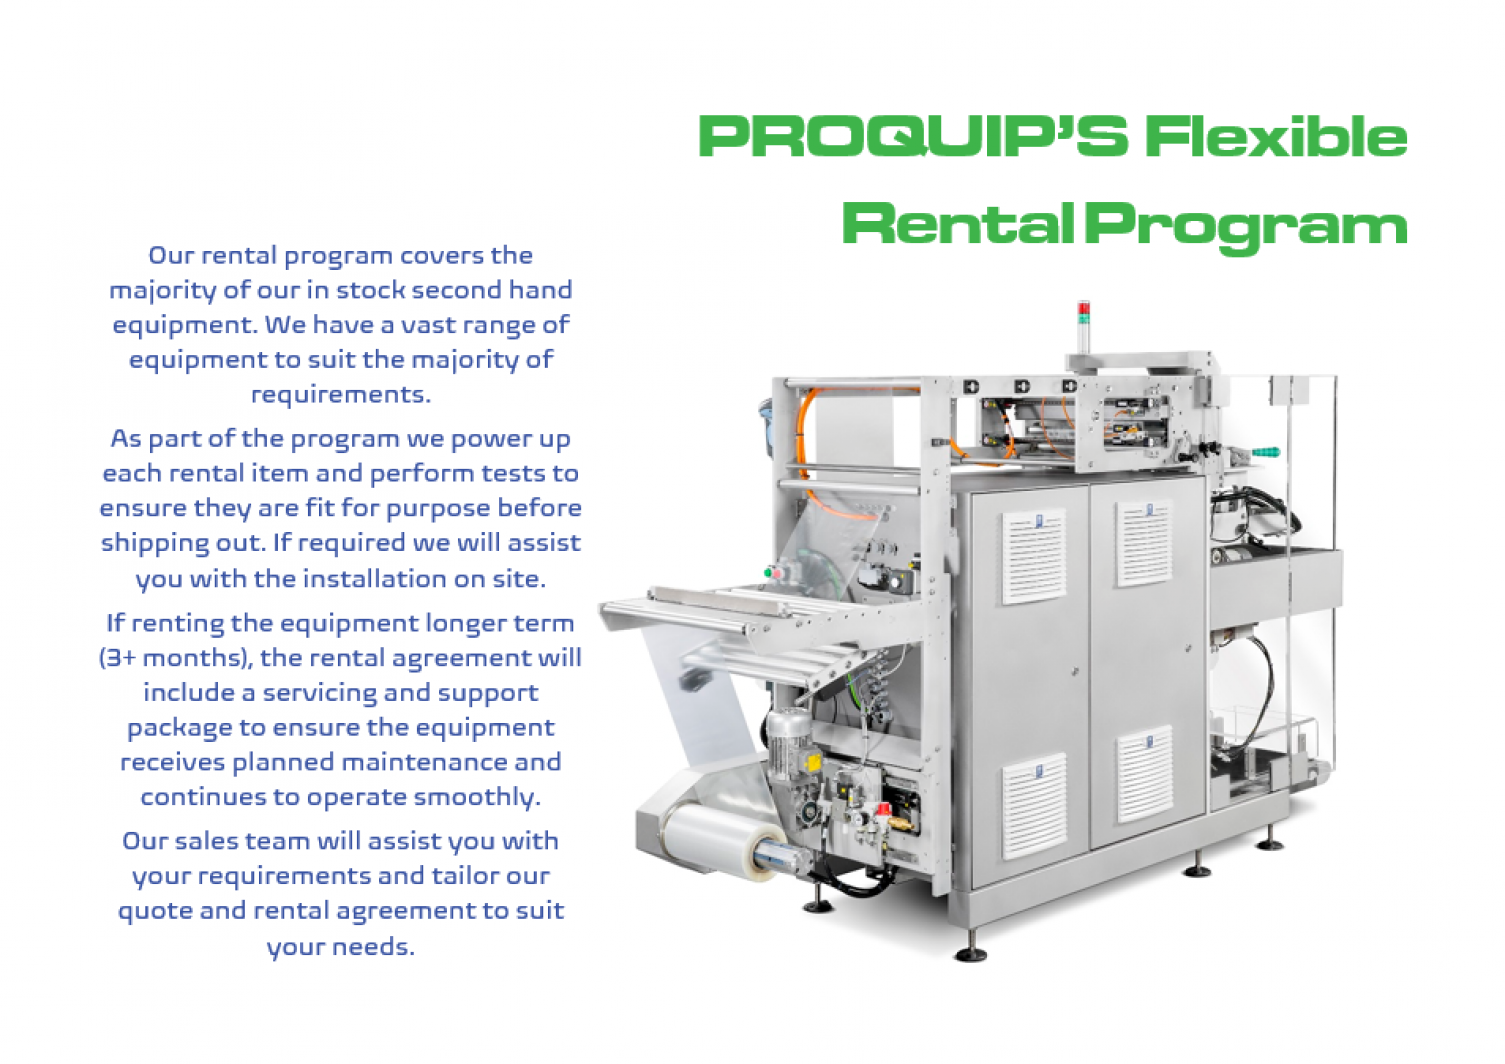 An overview of what the rental program entails